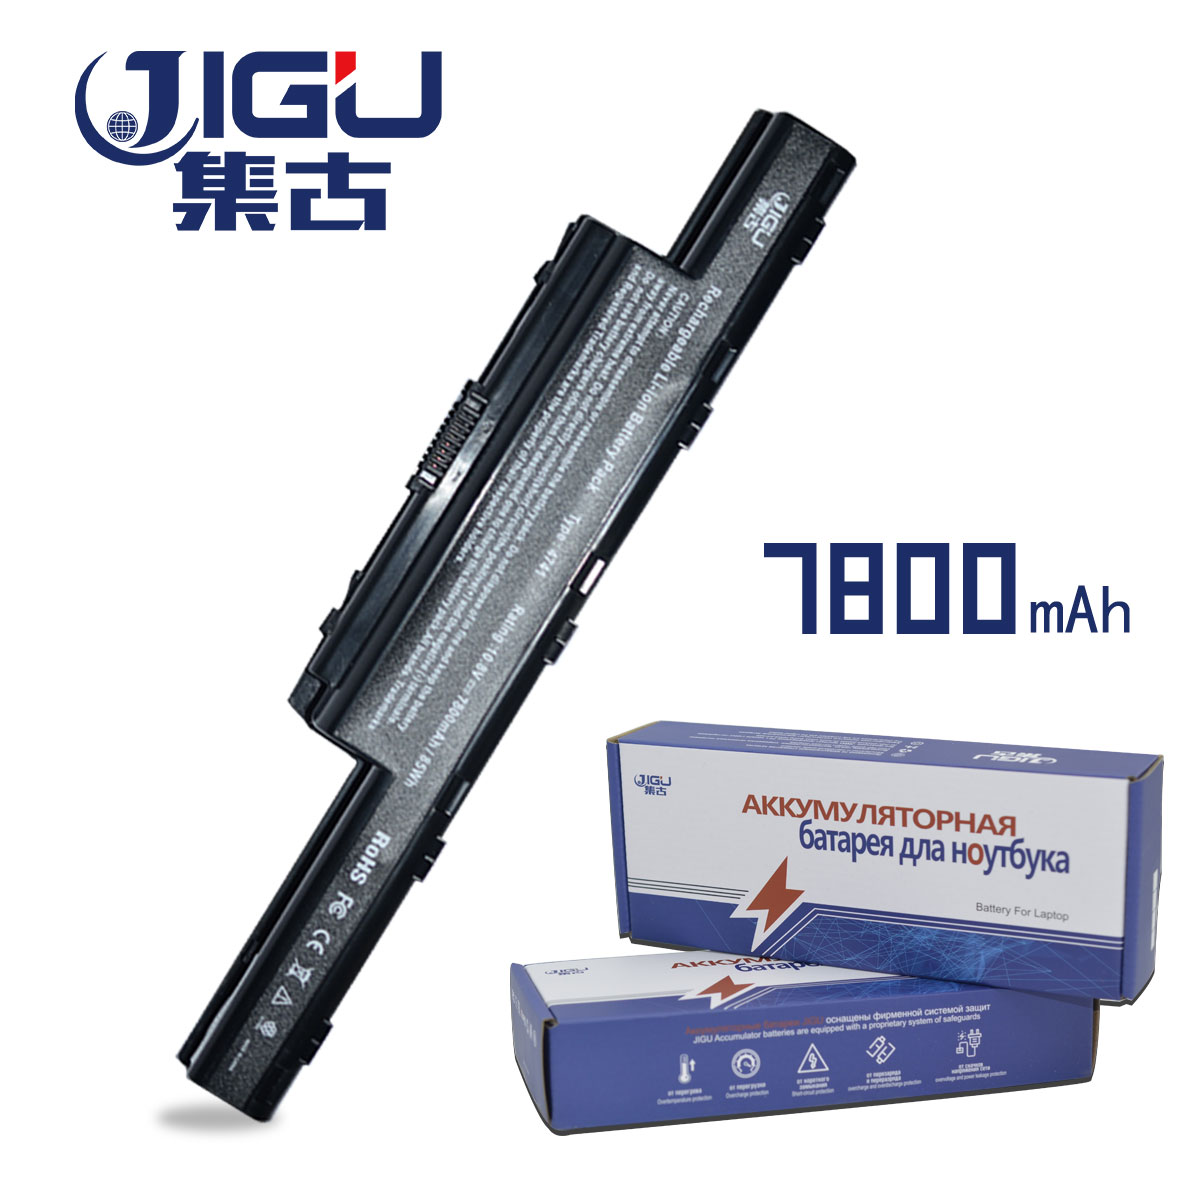 JIGU 7750g NEW Laptop Battery For Acer Aspire V3 V3-471G V3-551G V3-571G V3-771G E1 E1-421 E1-431 E1-471 E1-531 E1-571 Series curved end stainless steel watch band for breitling iwc tag heuer butterfly buckle strap wrist belt bracelet 18mm 20mm 22mm 24mm